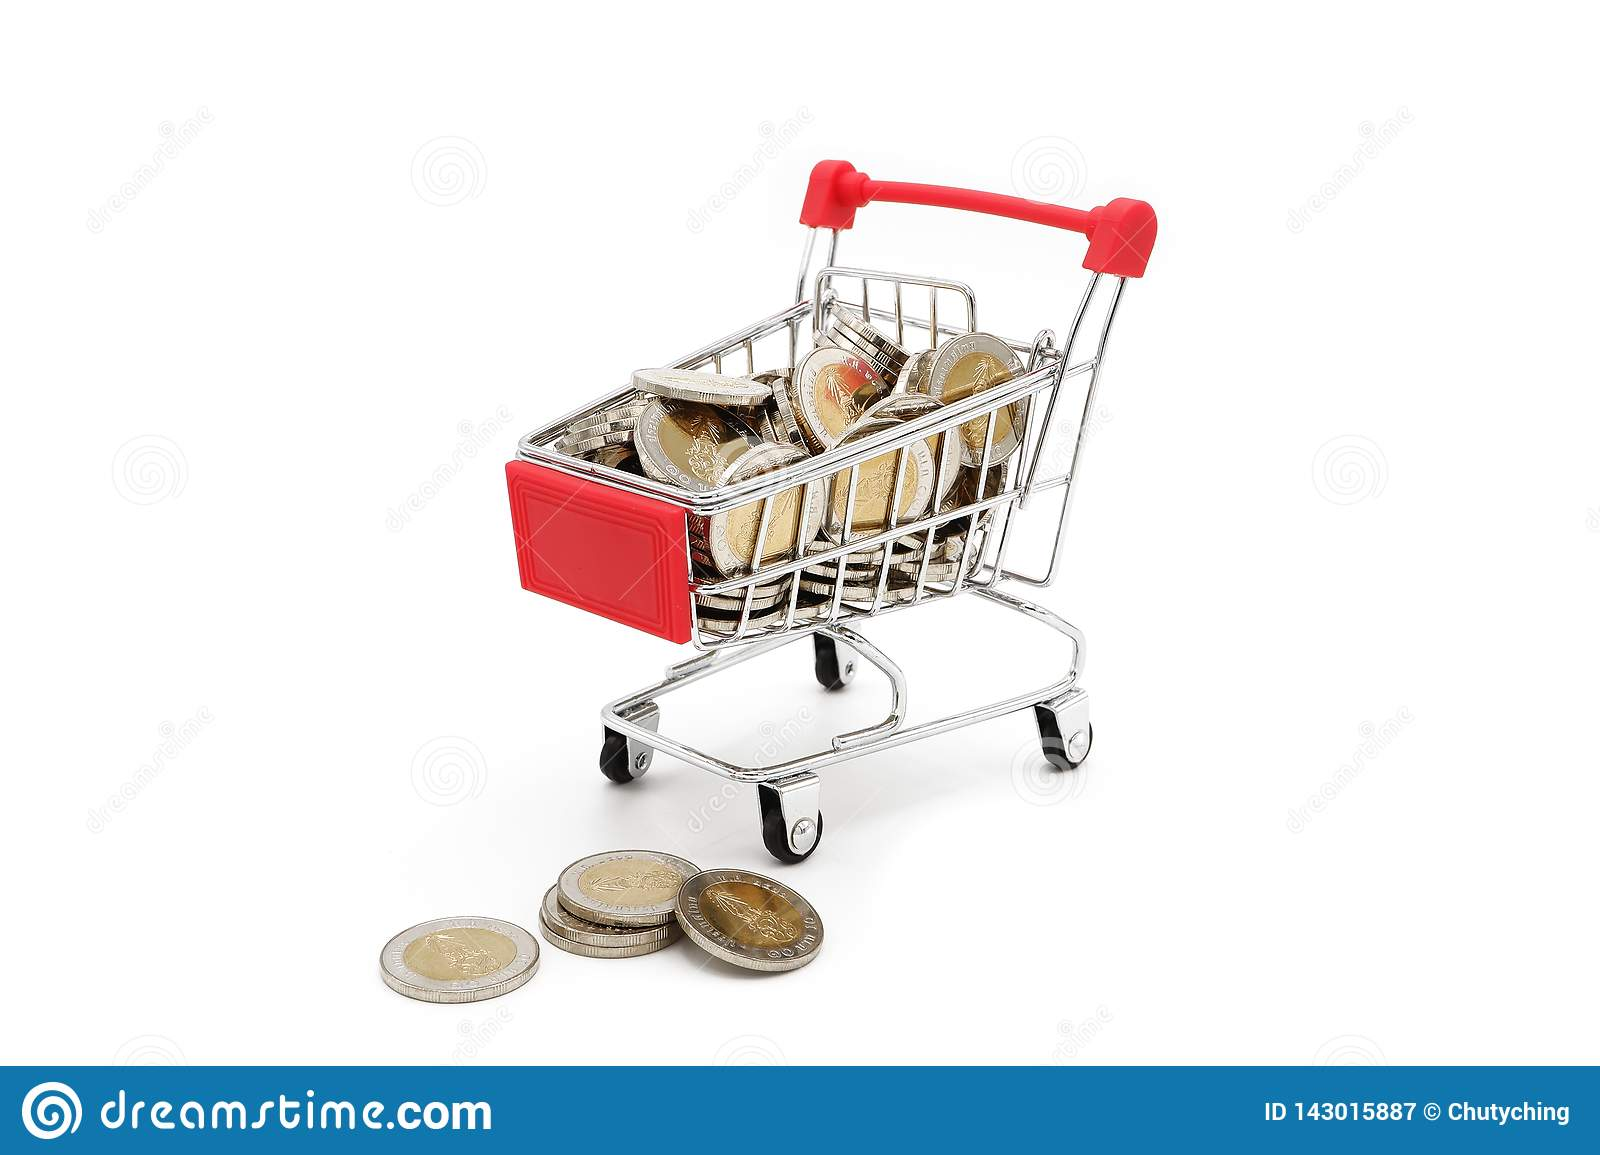 Red miniature shopping cart filled with new 10 Thai Baht coins.